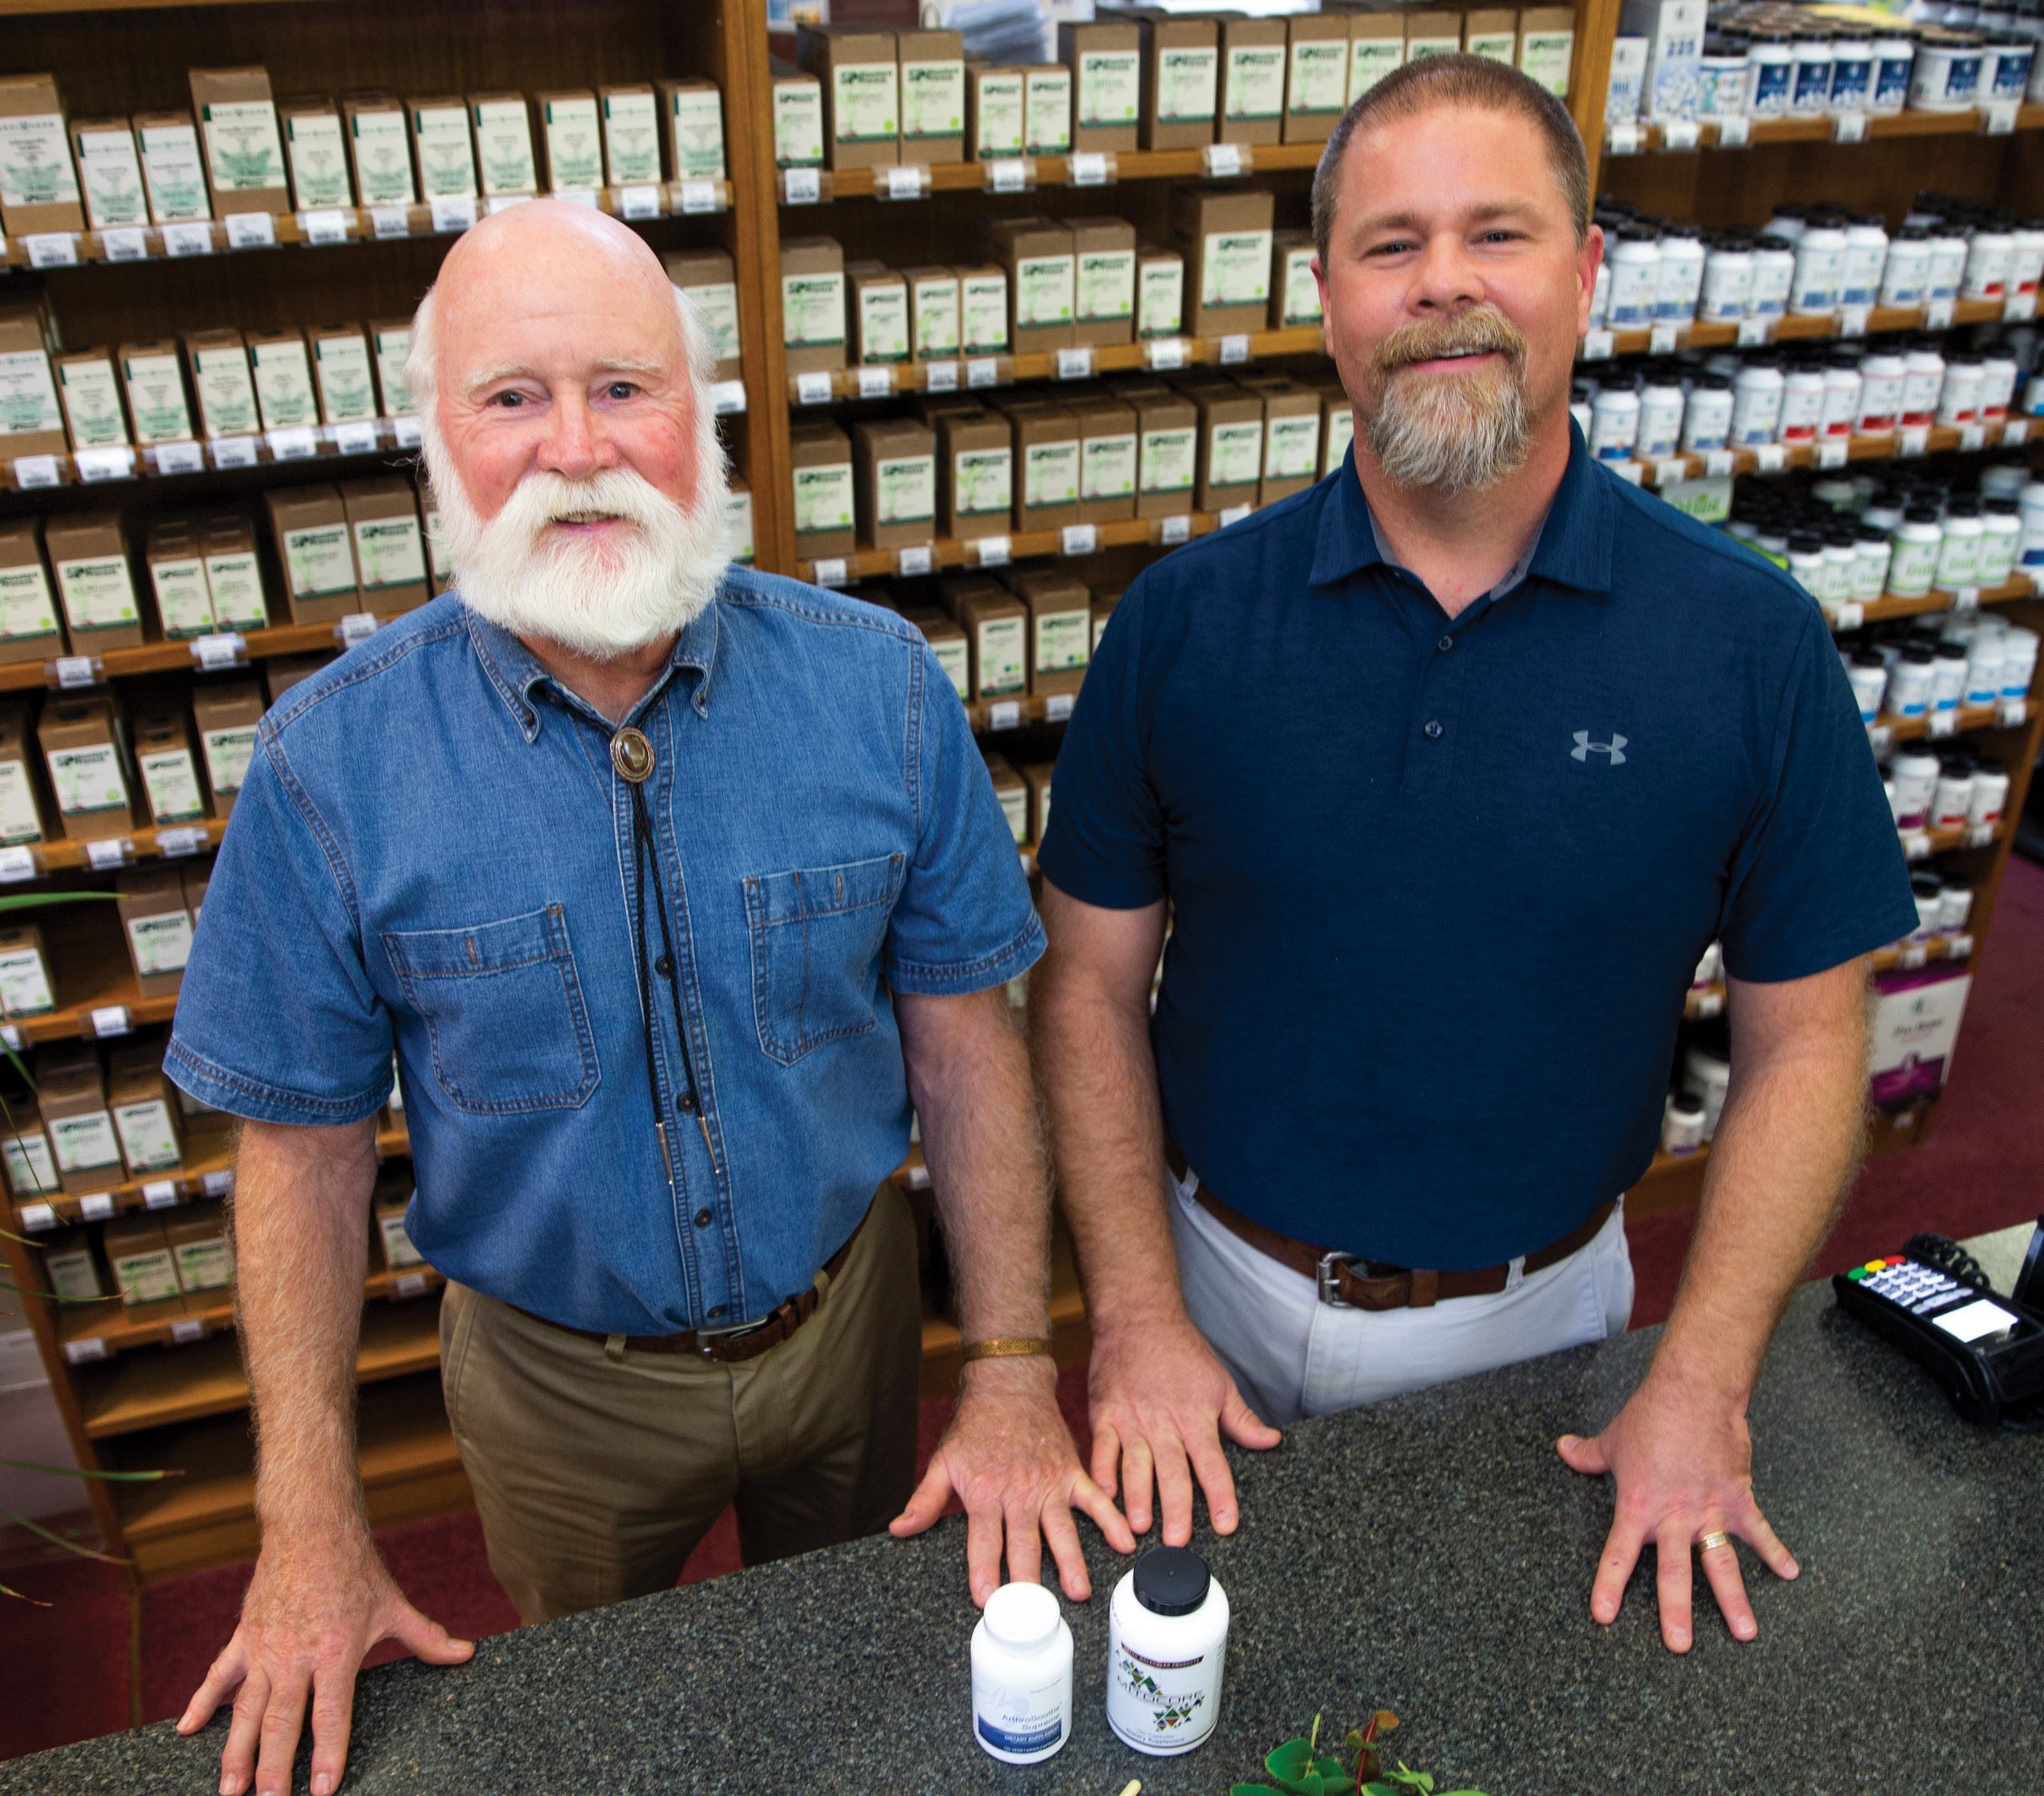 Lionville Natural Pharmacy: Providing Incomparable Customer Care